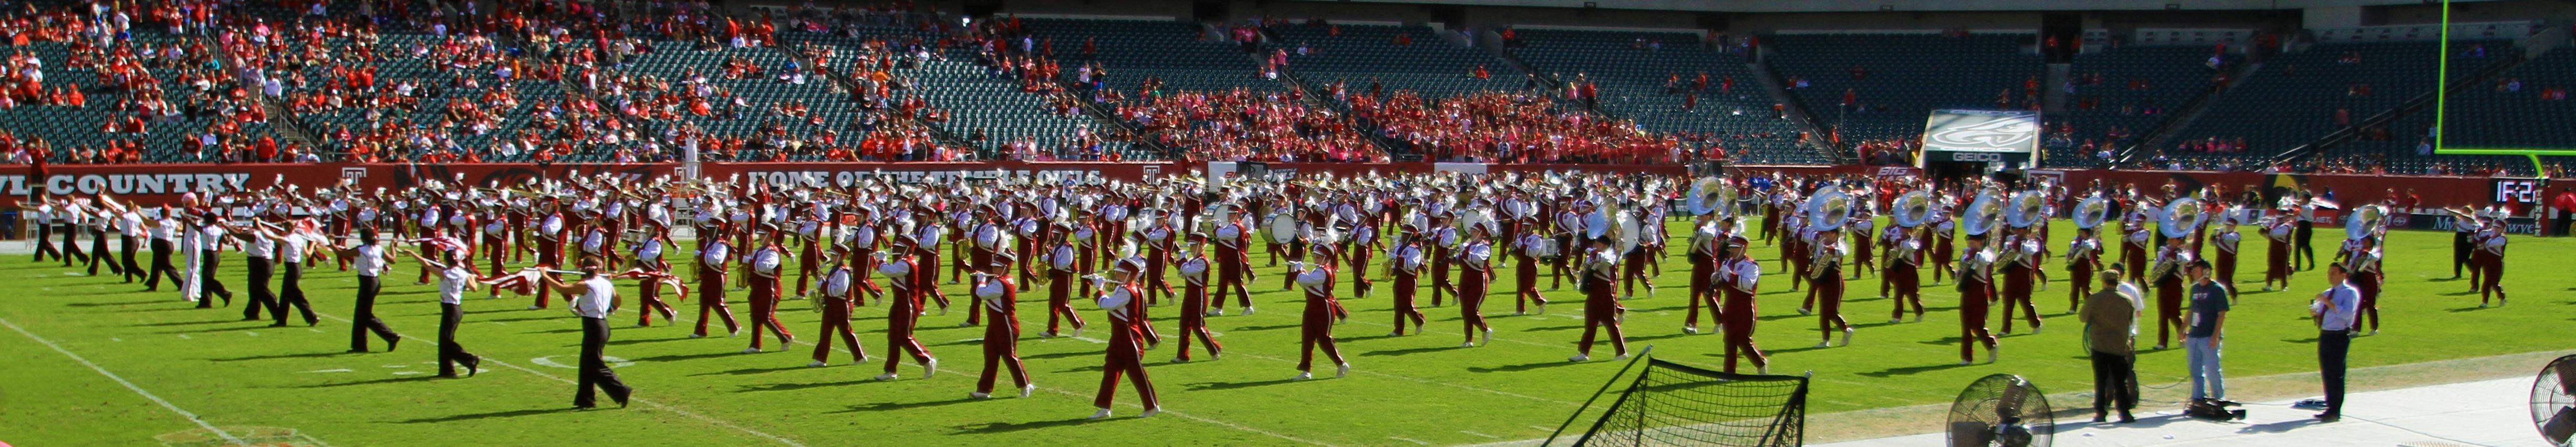 More of the Temple marching band